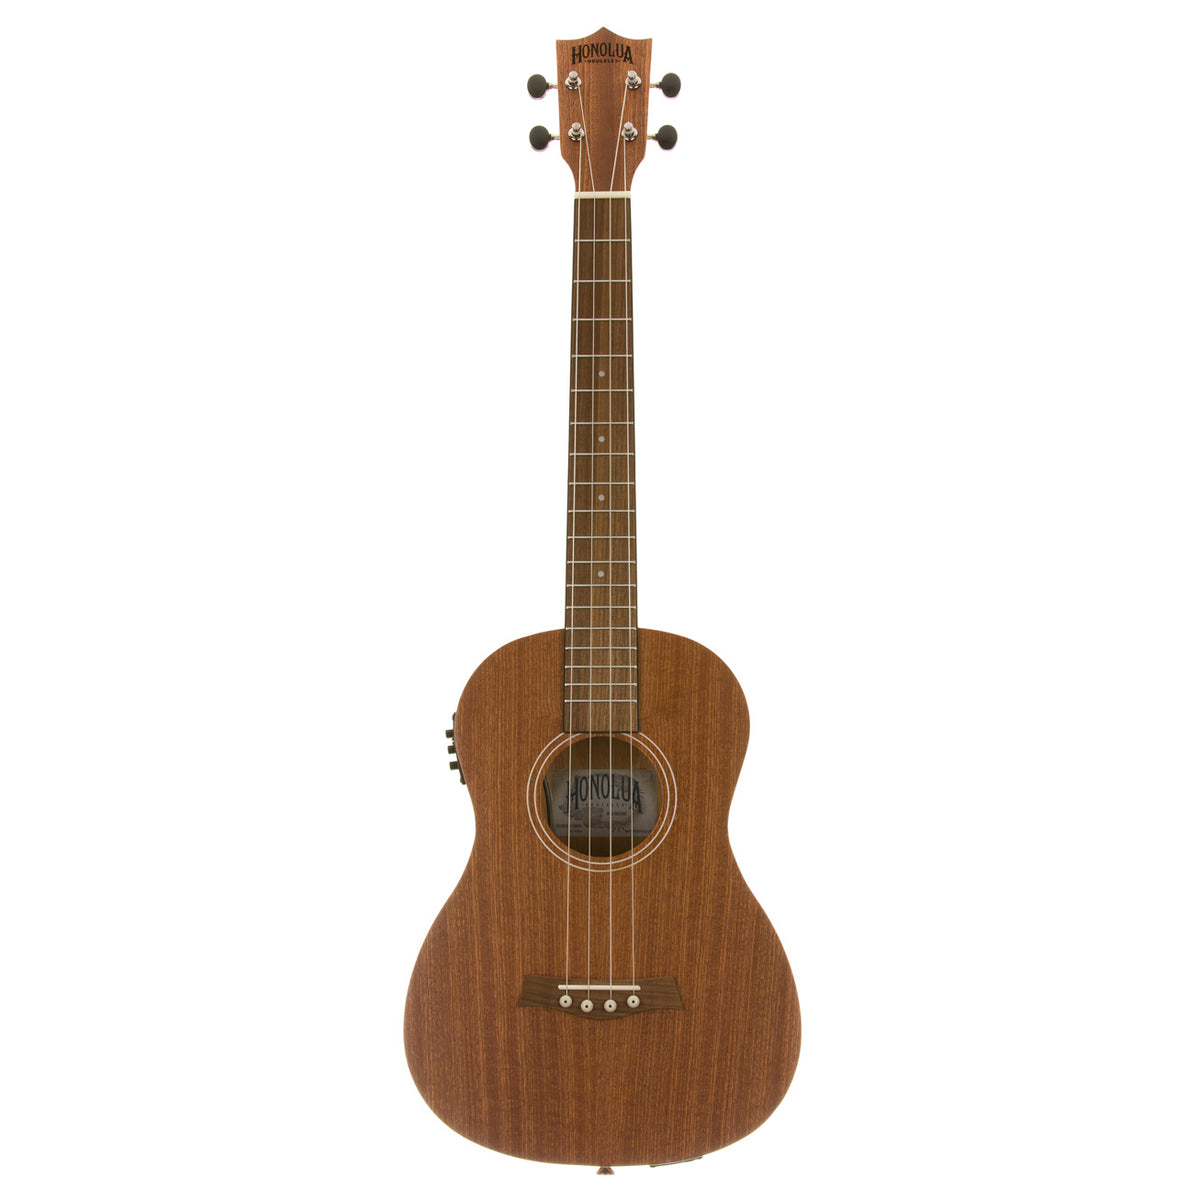 Honu Baritone Acoustic Electric Ukulele